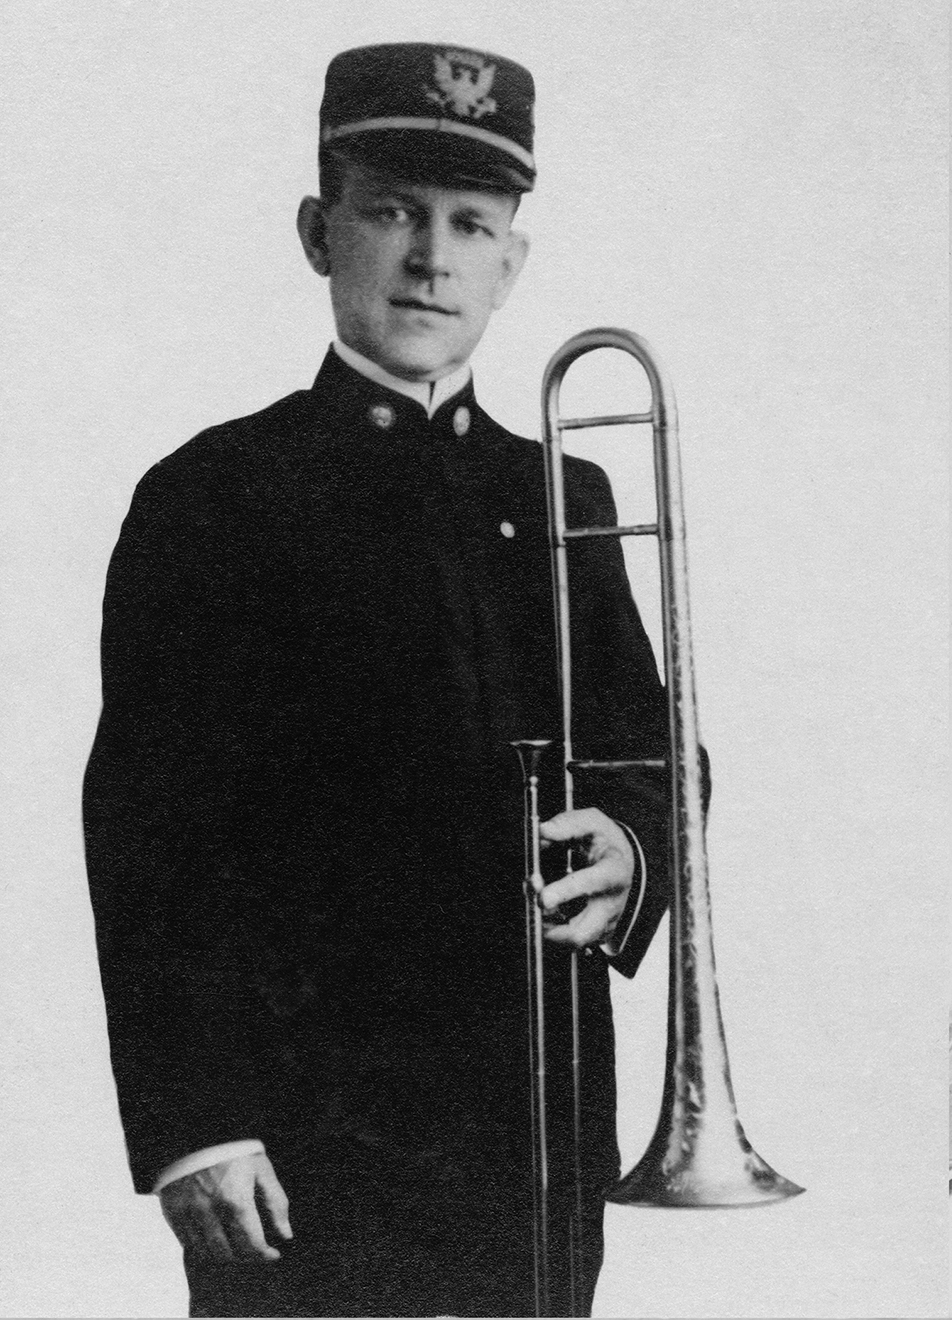 Manuel Yingling, featured trombonist in John Phillip Sousa's Band